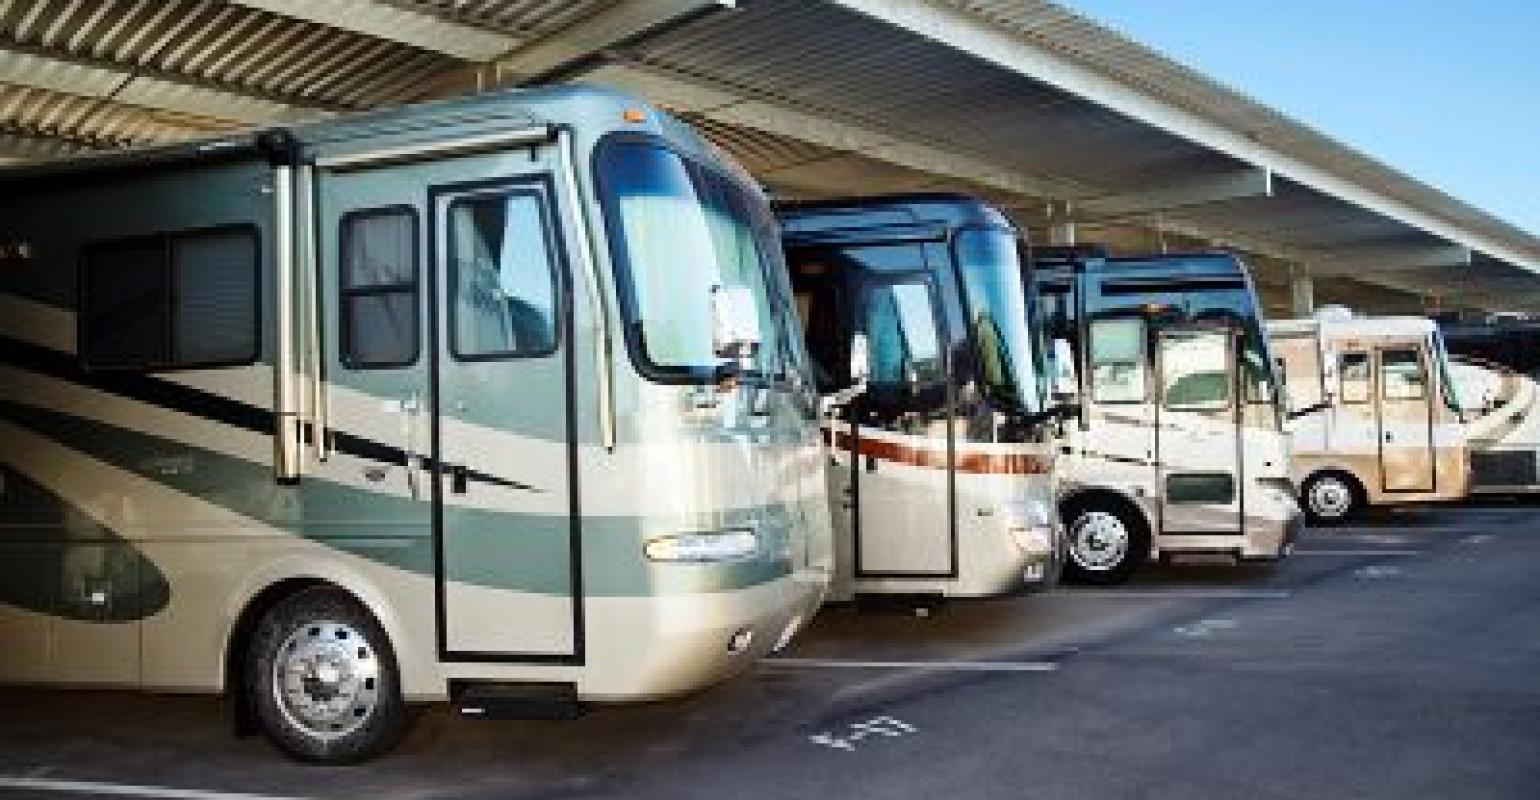 Garage Apartment Plans With Rv Storage Running A Profitable Boat Rv Storage Operation Service And